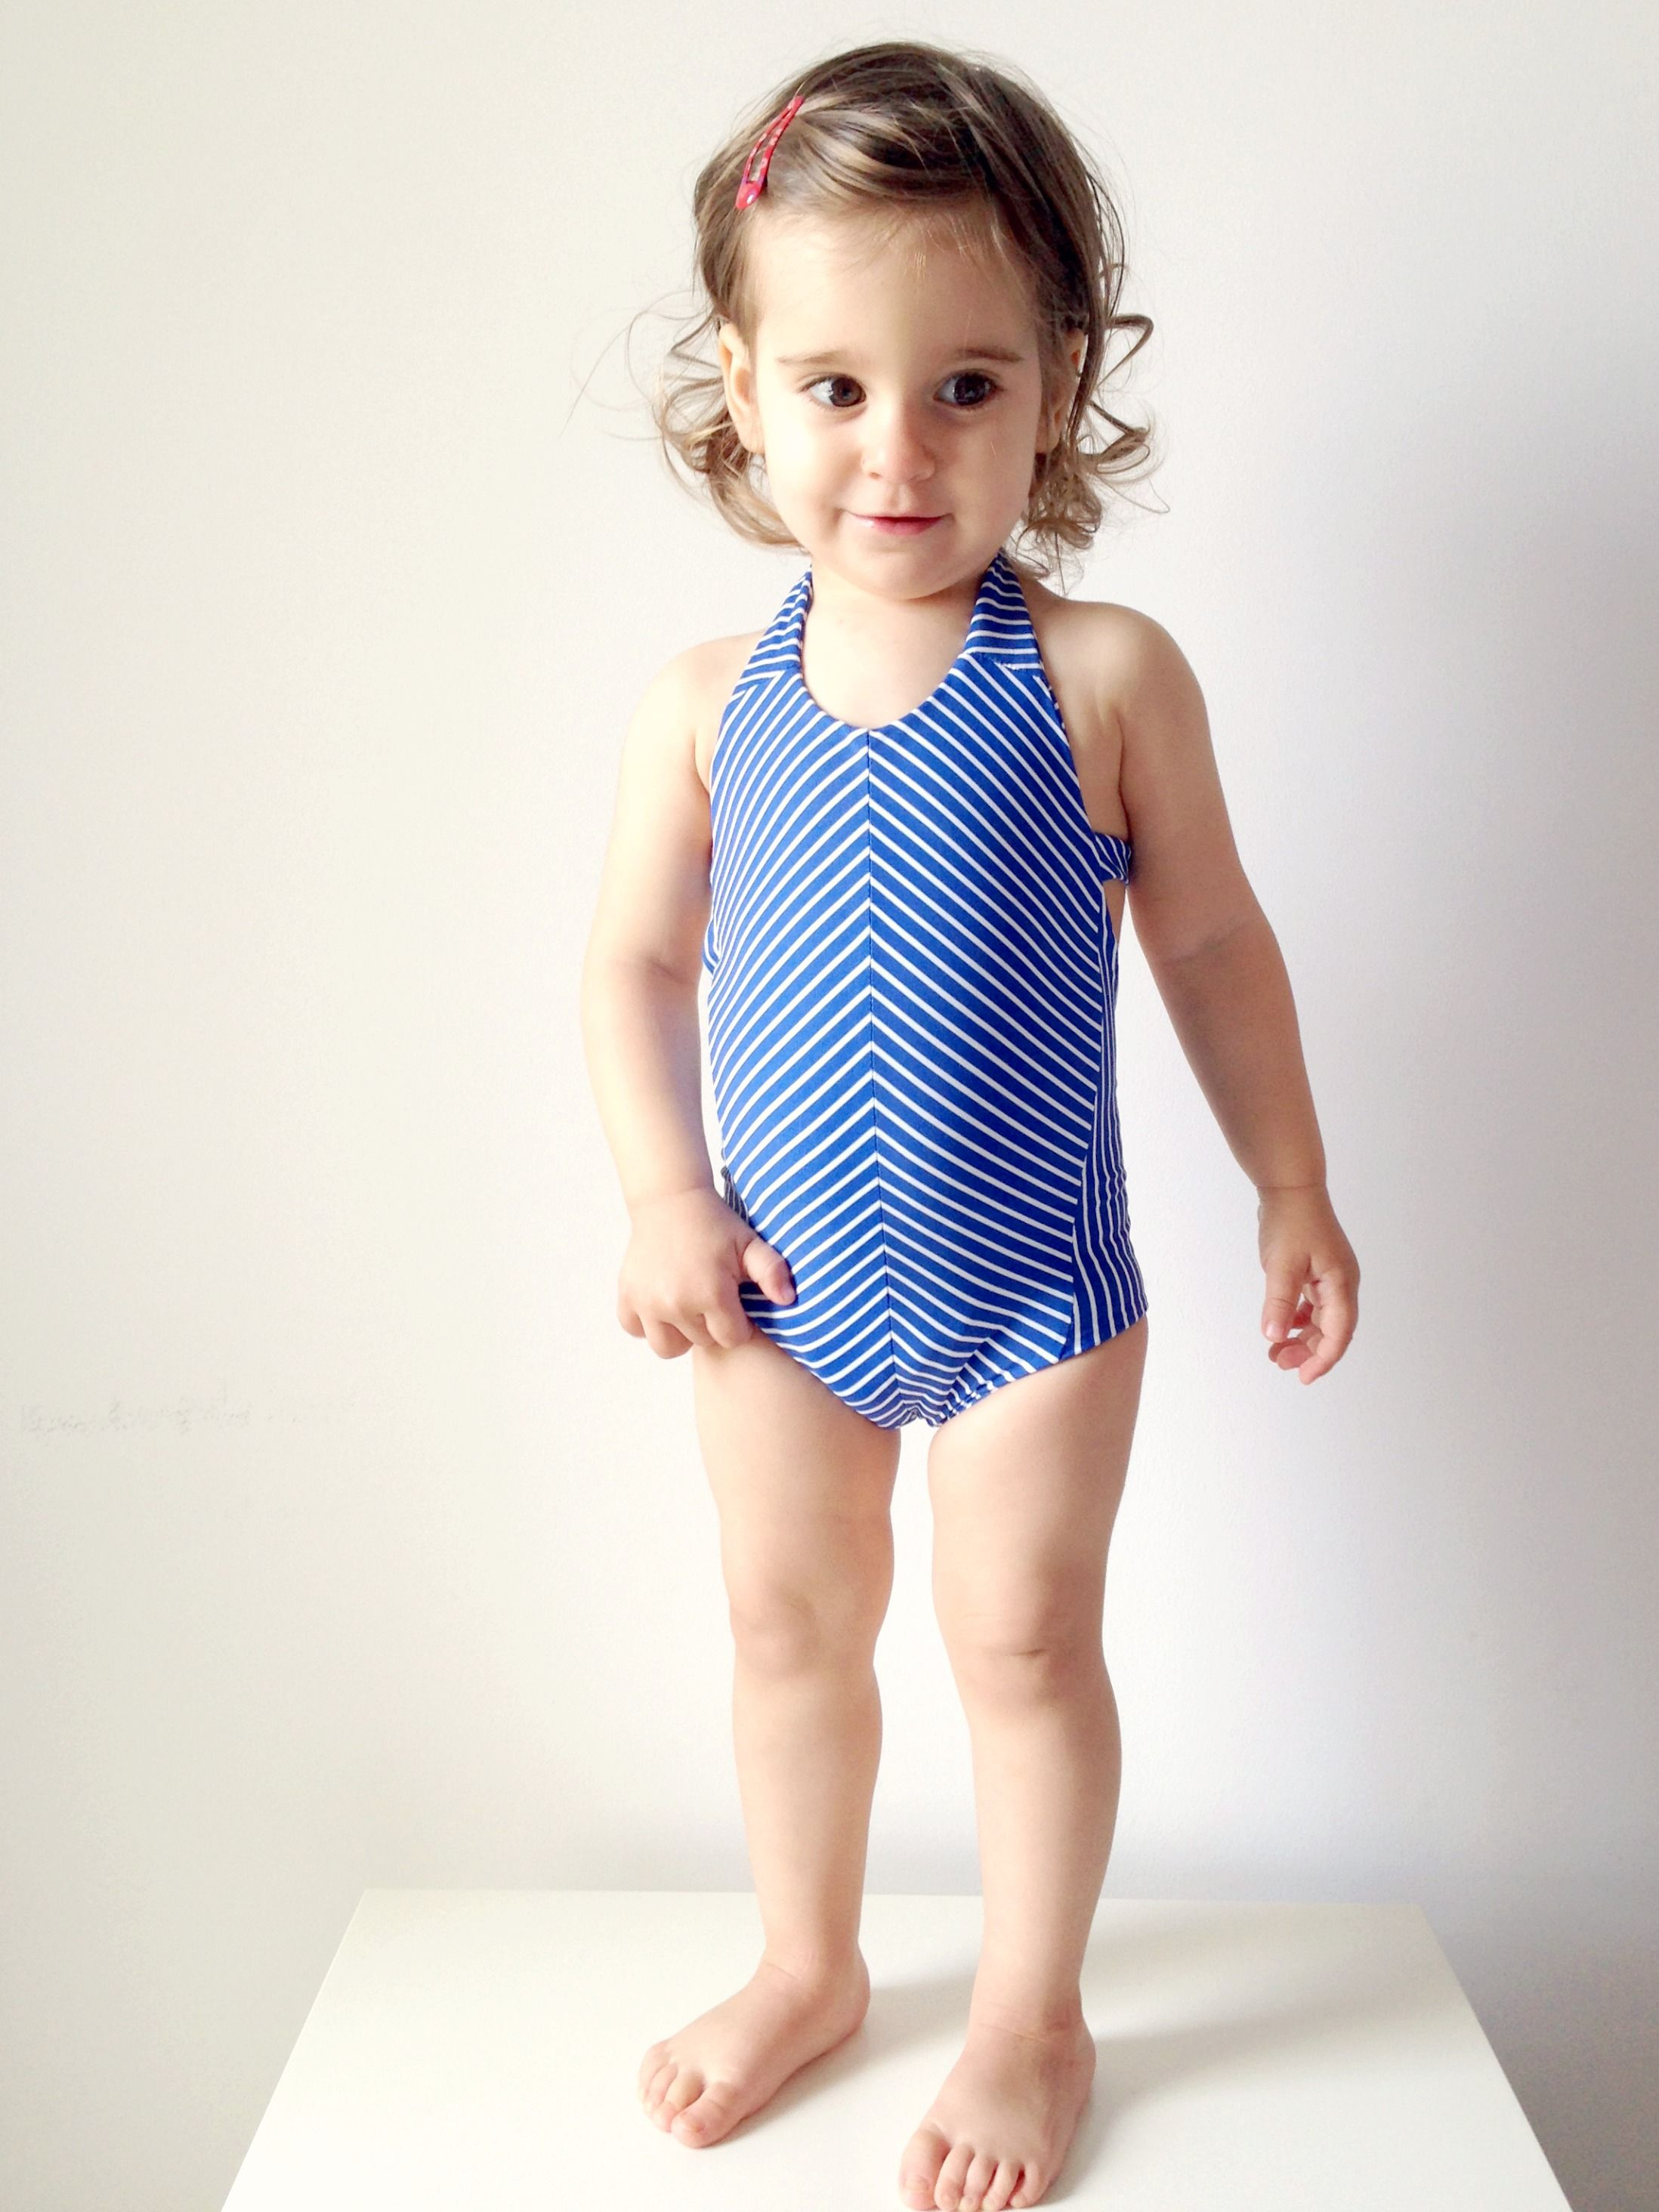 La Folie - Azur Swimsuit